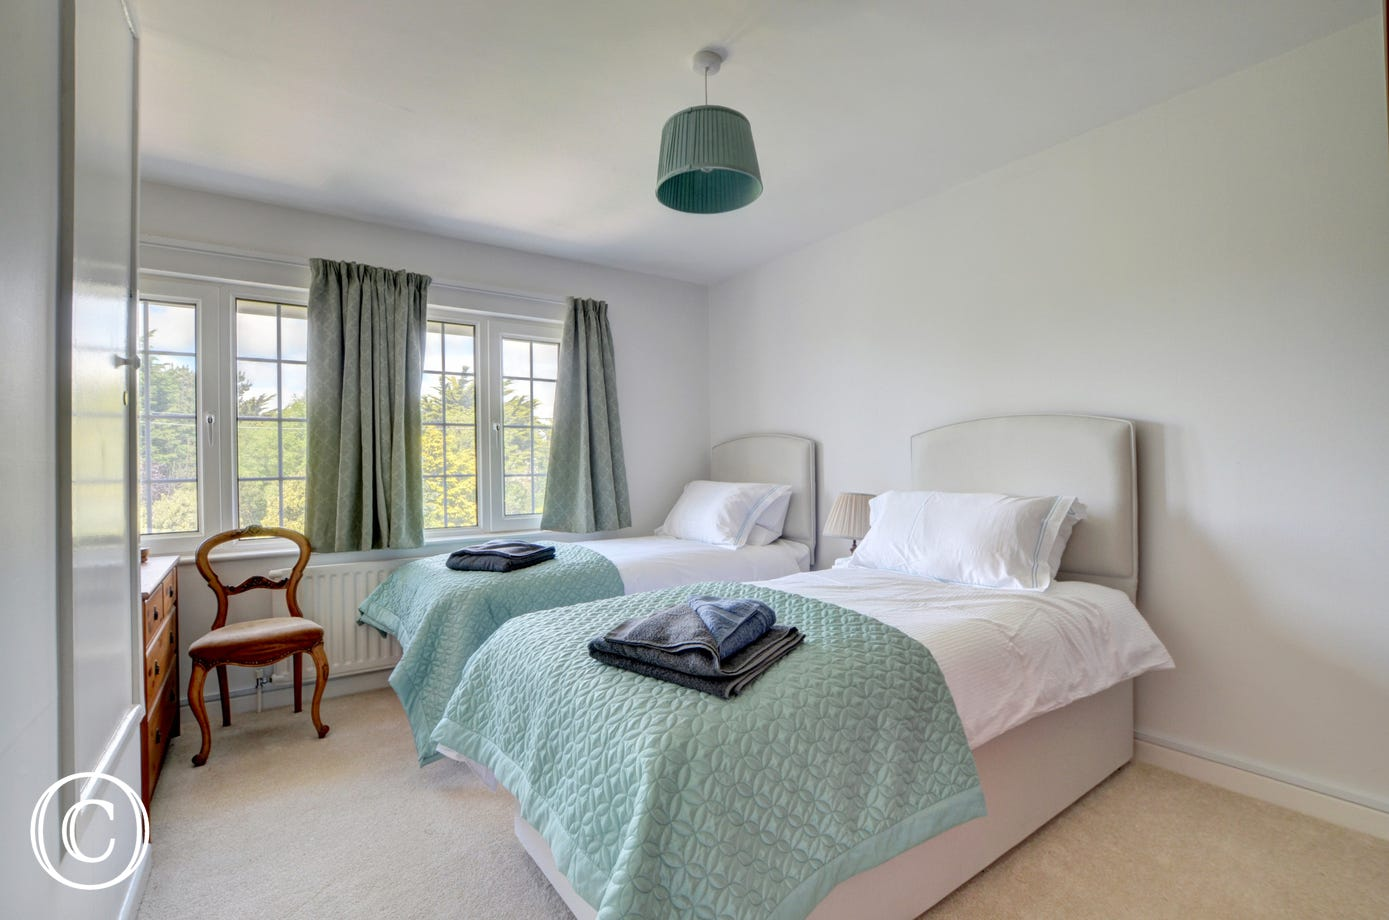 One of the spacious twin bedrooms